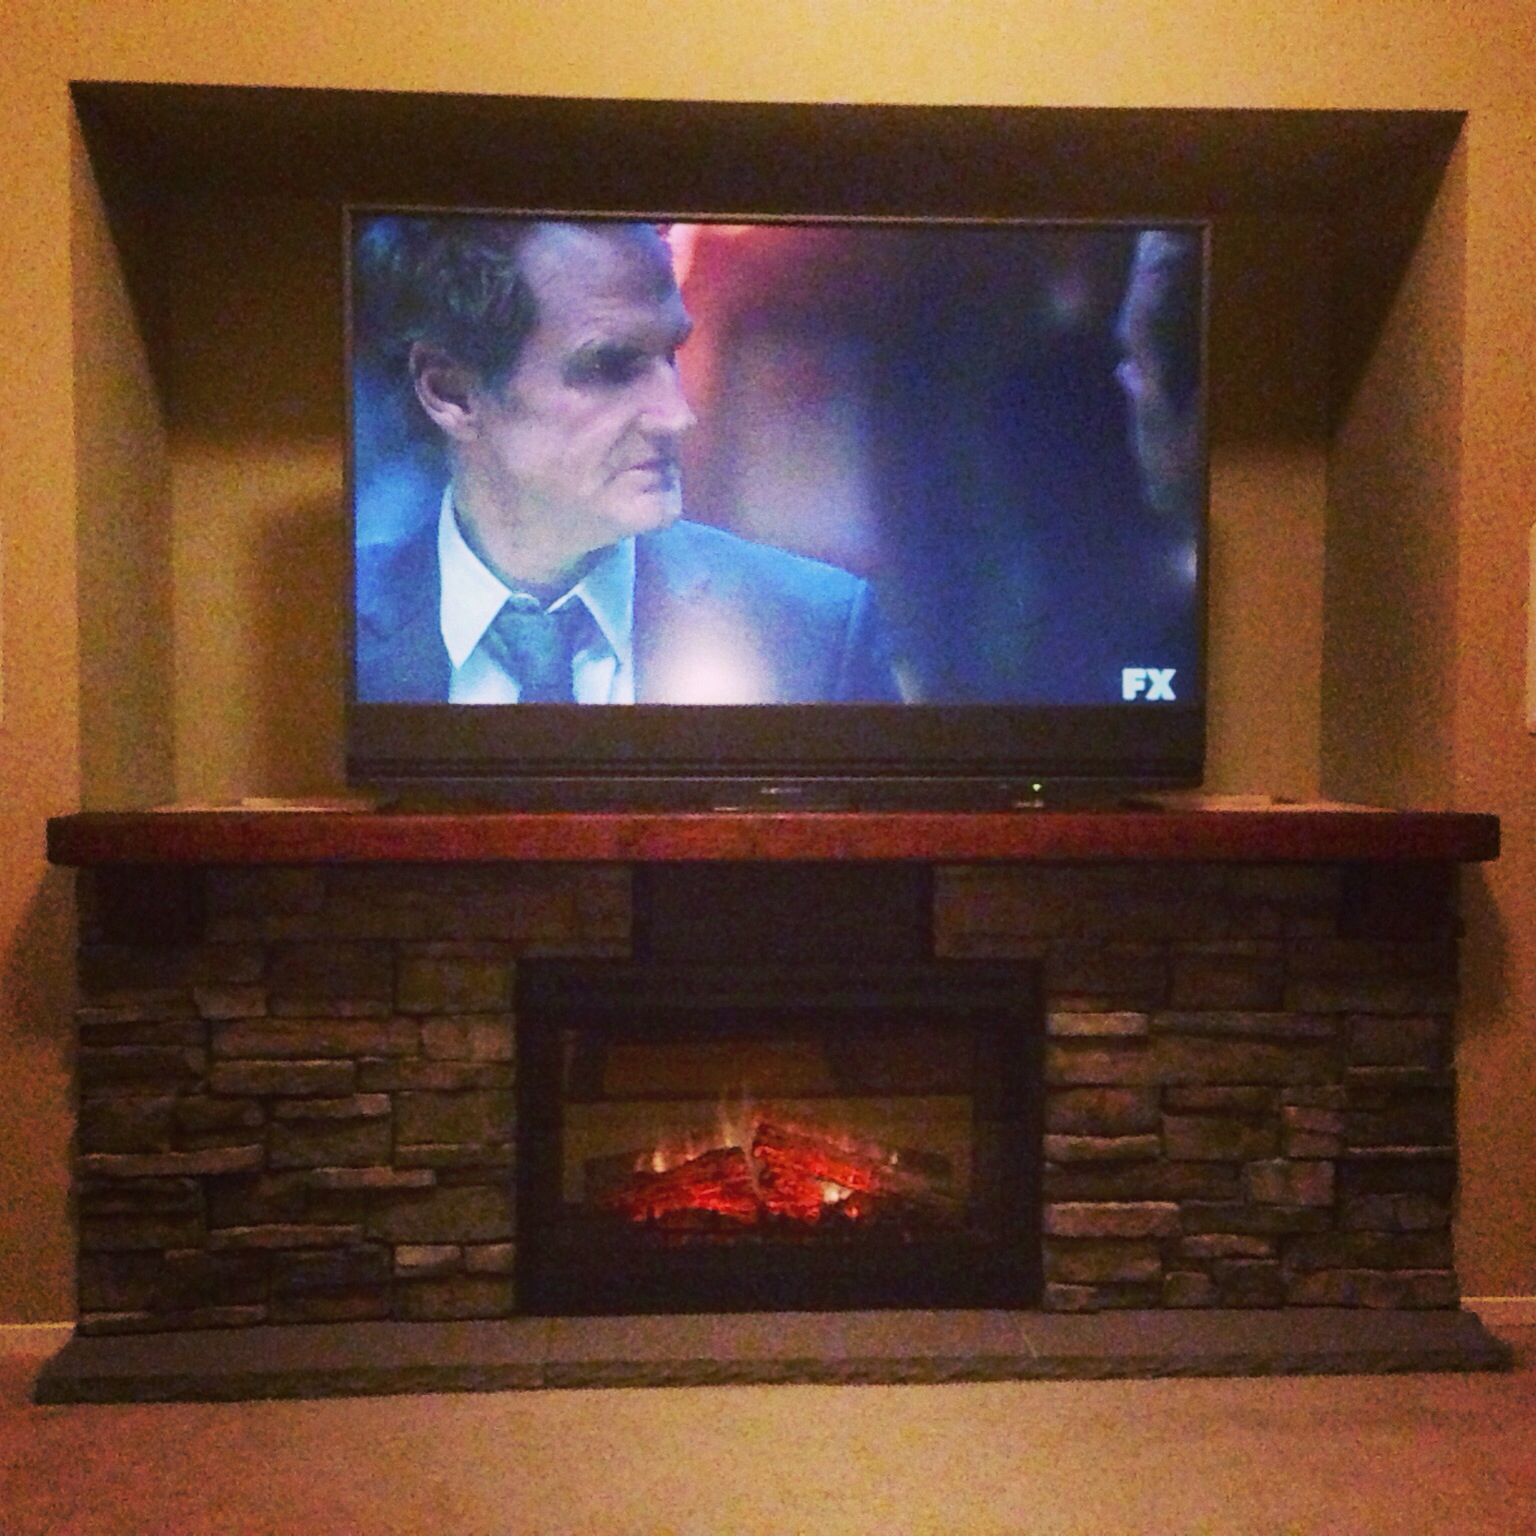 Diy Electric Fireplace Hearth Tv Stand The Components Are Hidden Behind The Stonework And Fireplace Tv Stand Electric Fireplace Tv Stand Tv Stand Designs